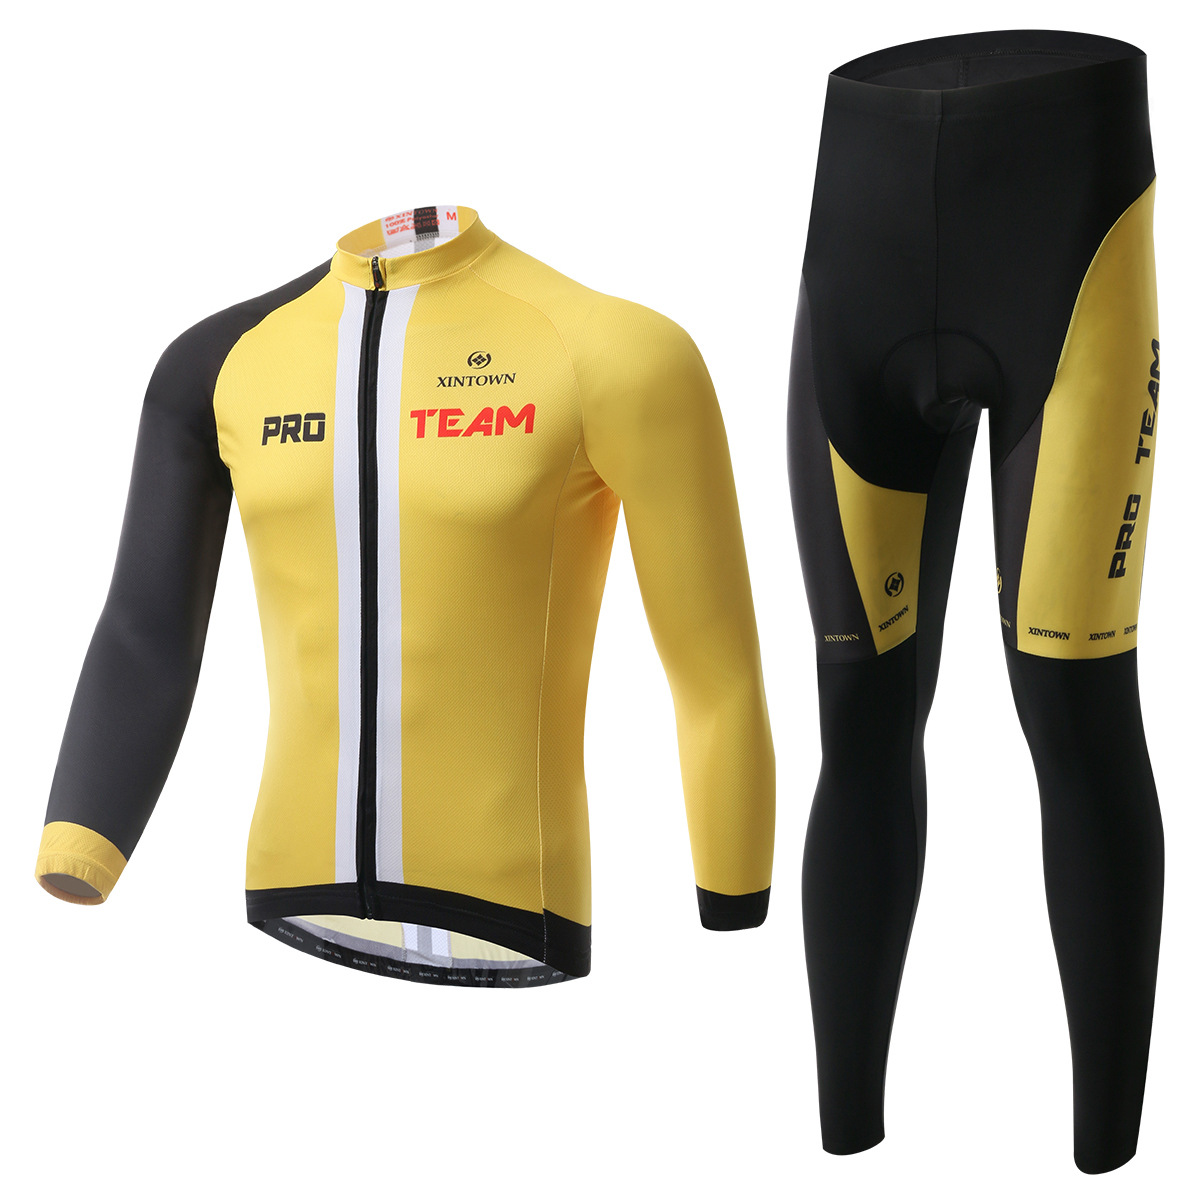 XINTOWN new leader yellow jersey long sleeve suit bicycle riding wear suits spring and autumn moisture sweat pants